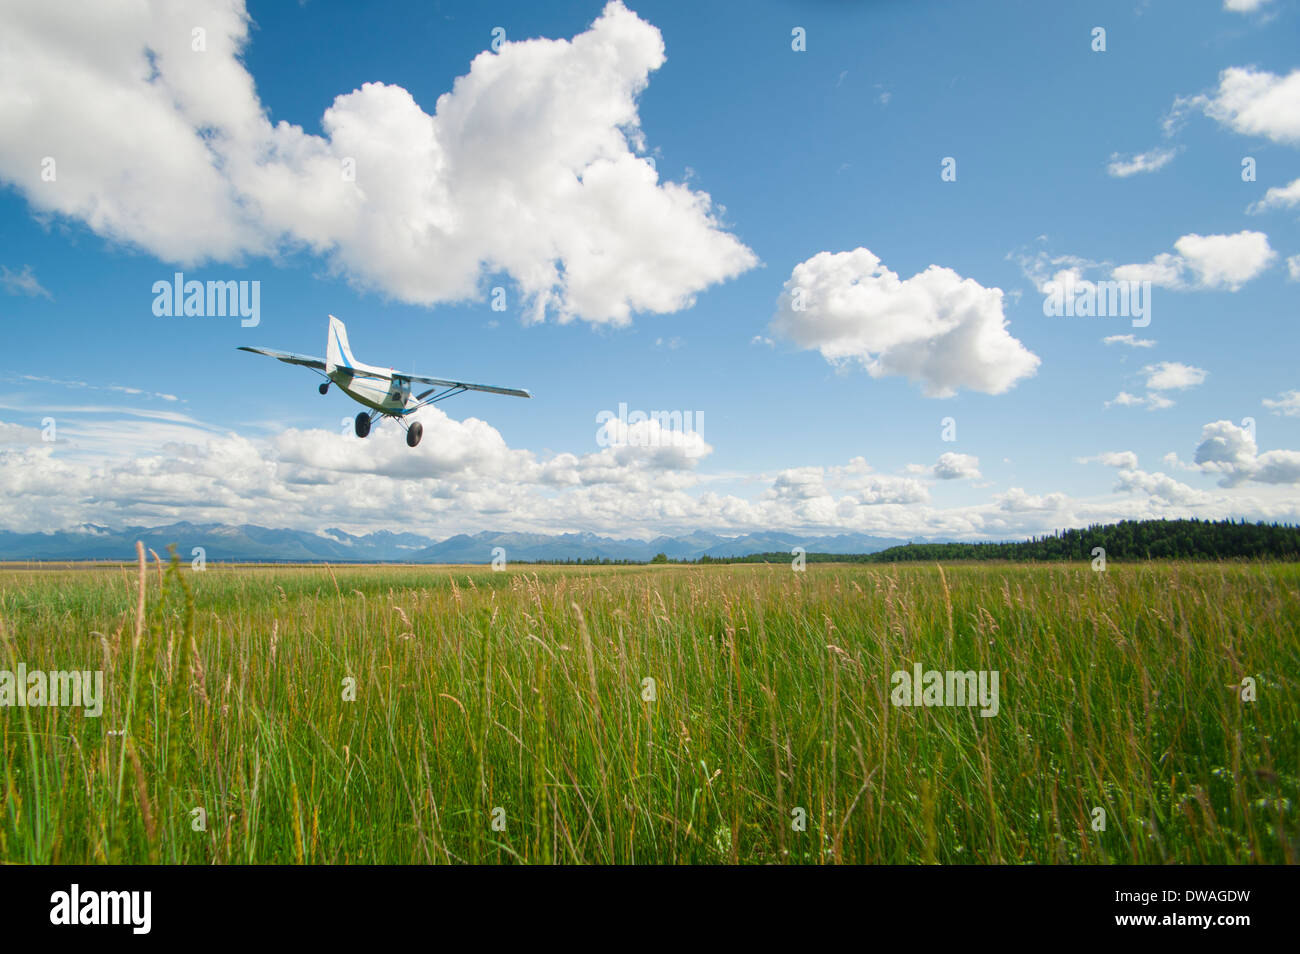 Chet Harris overflying low over a grass strip in his Maule M5 airplane, Alaska - Stock Image